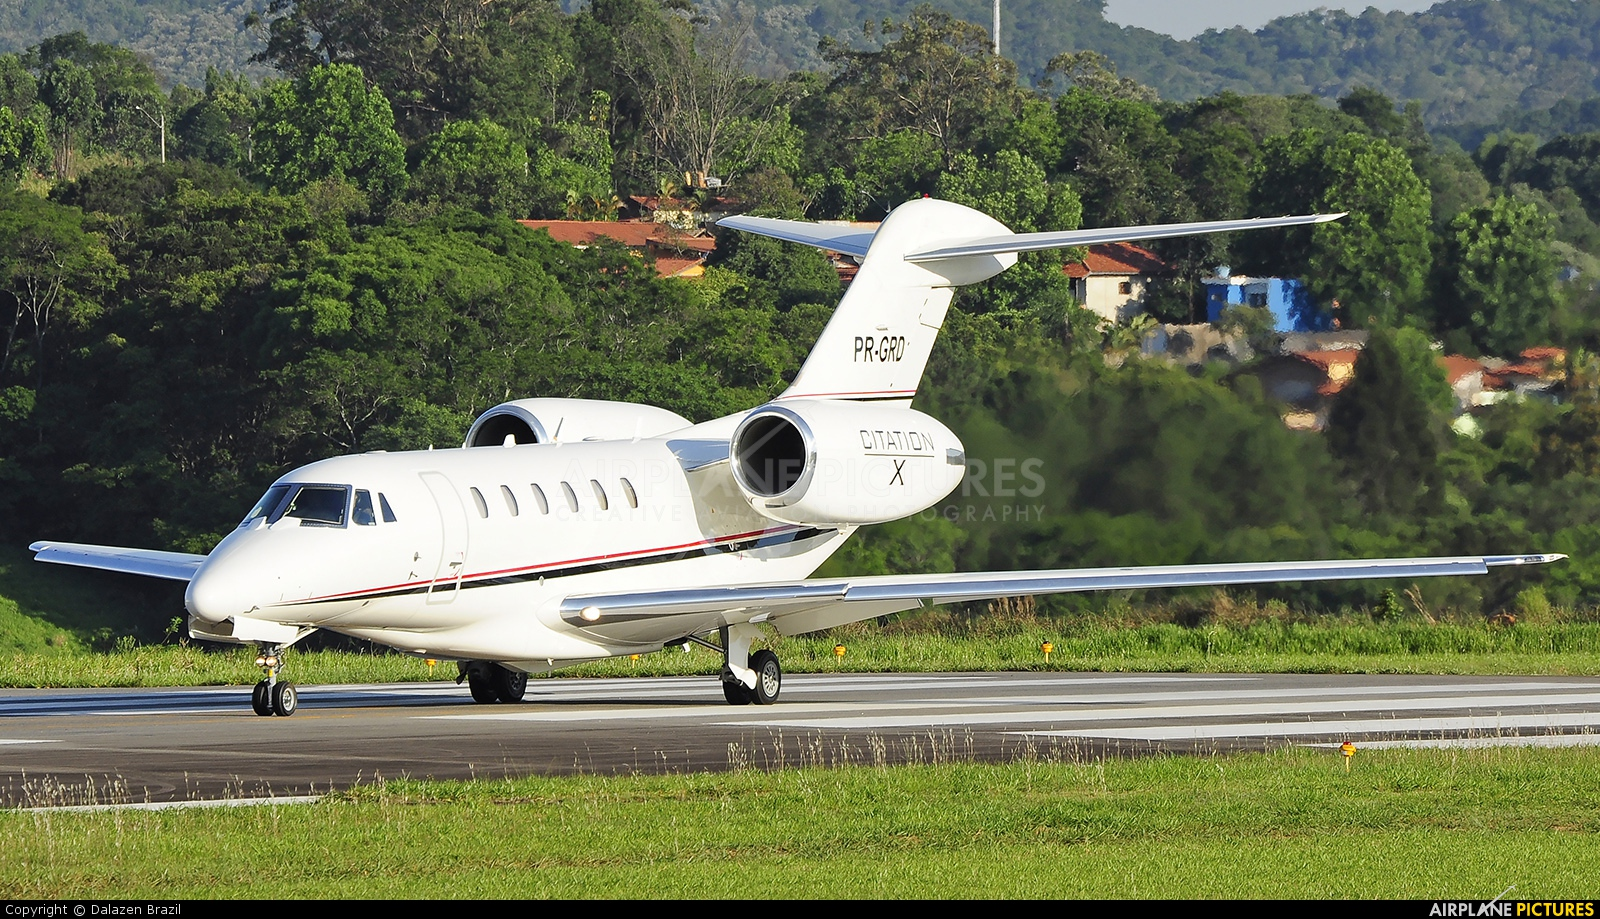 Private PR-GRD aircraft at Jundiaí, SP